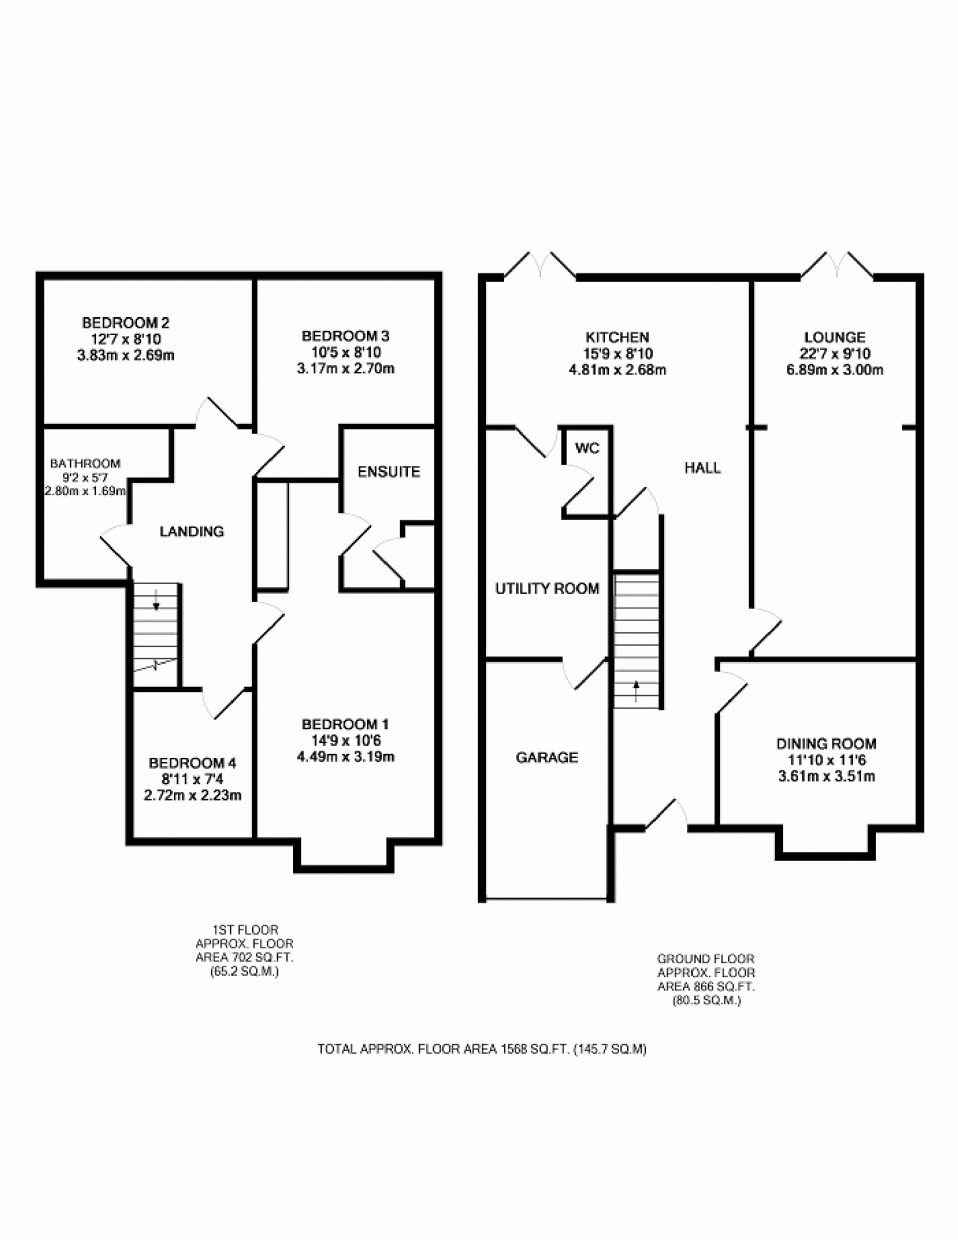 room layoutenerator two bedroom house floor plans of nice pictures plan creator with home and interior ideas awesome 958x1240